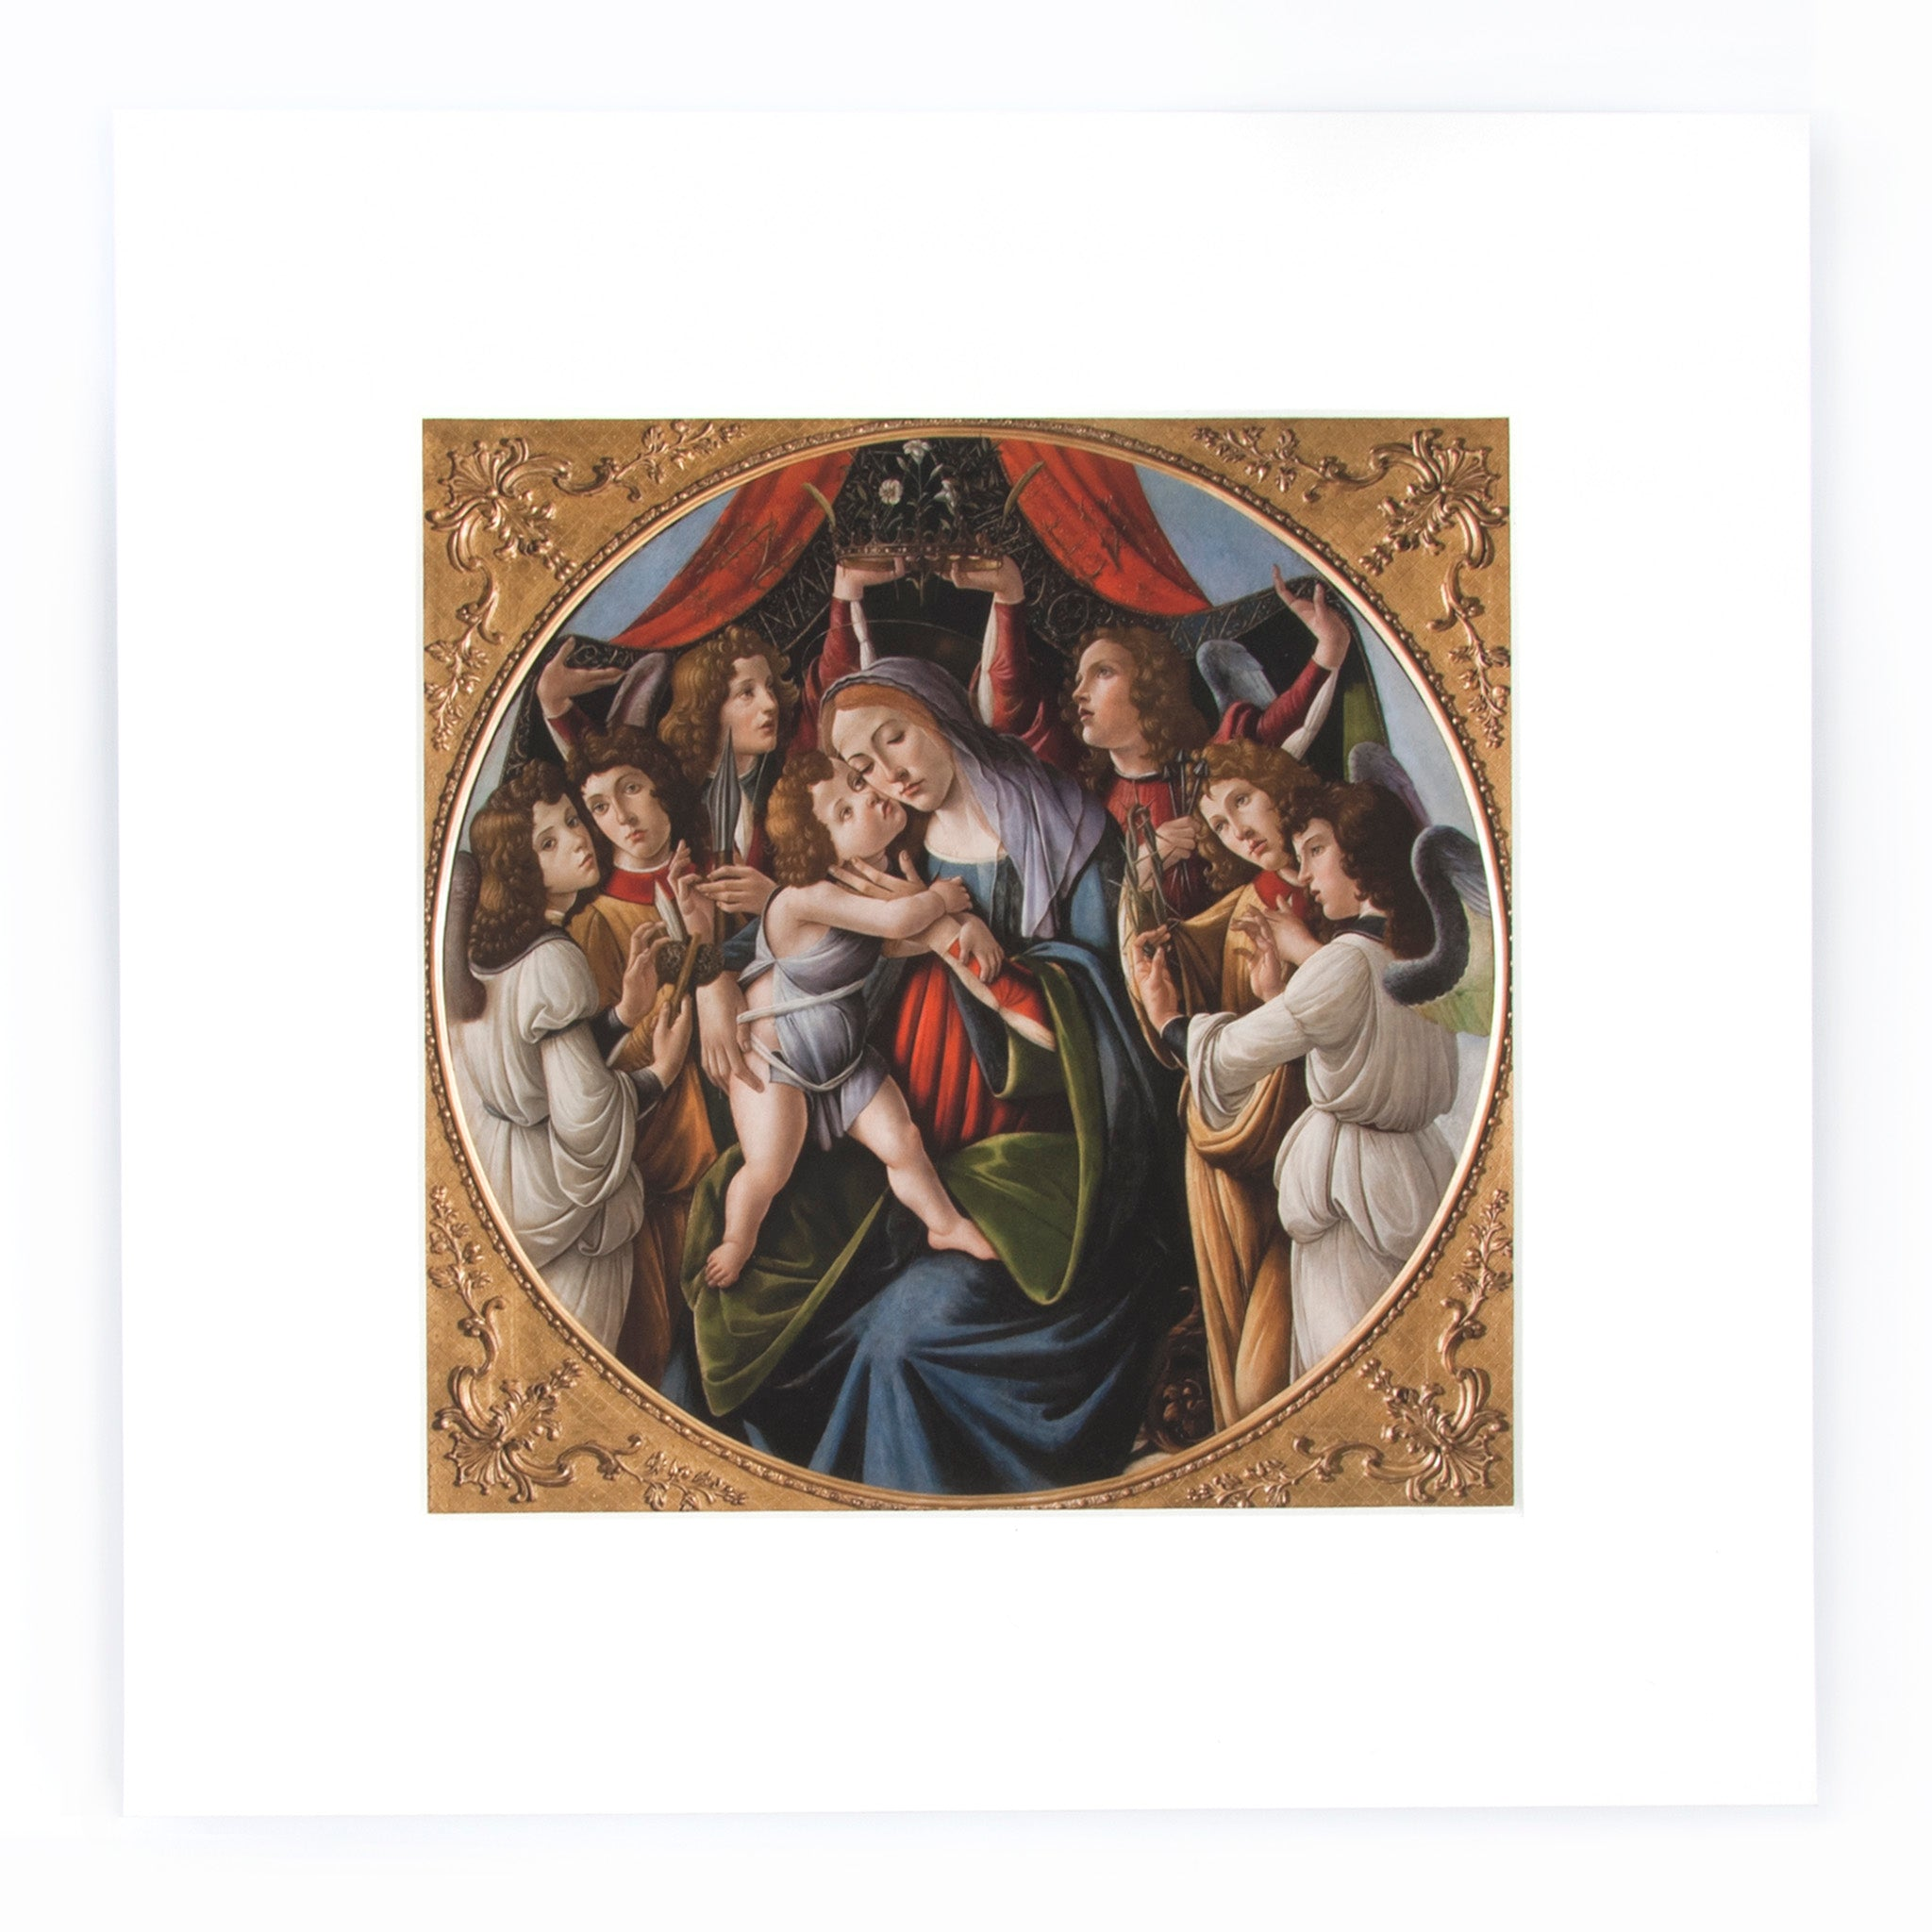 Botticelli 'Madonna and Child' Print Image